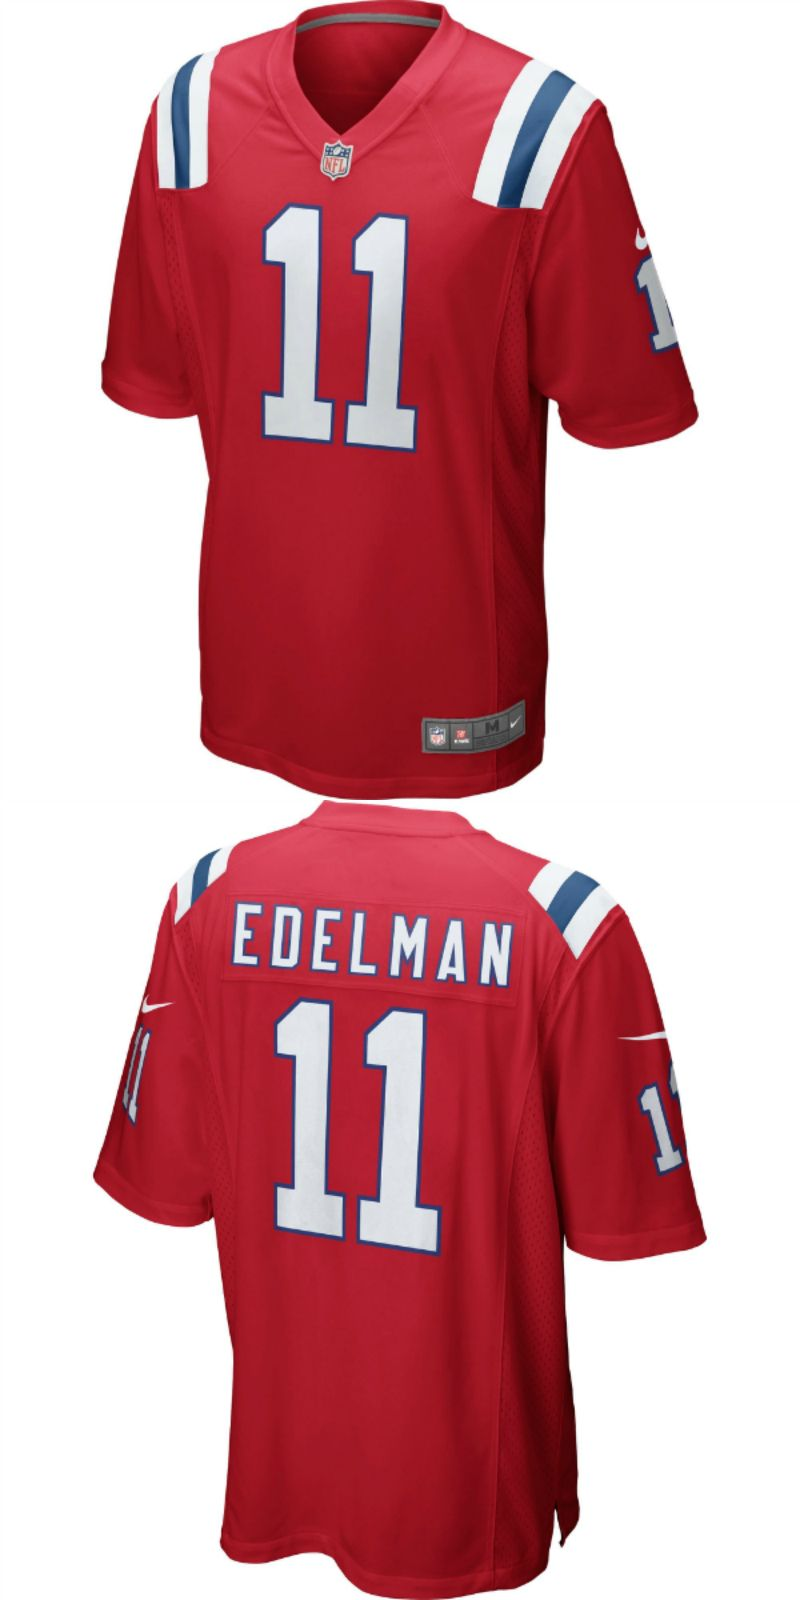 new styles c9781 5633c UP TO 70% OFF. Julian Edelman New England Patriots Nike ...